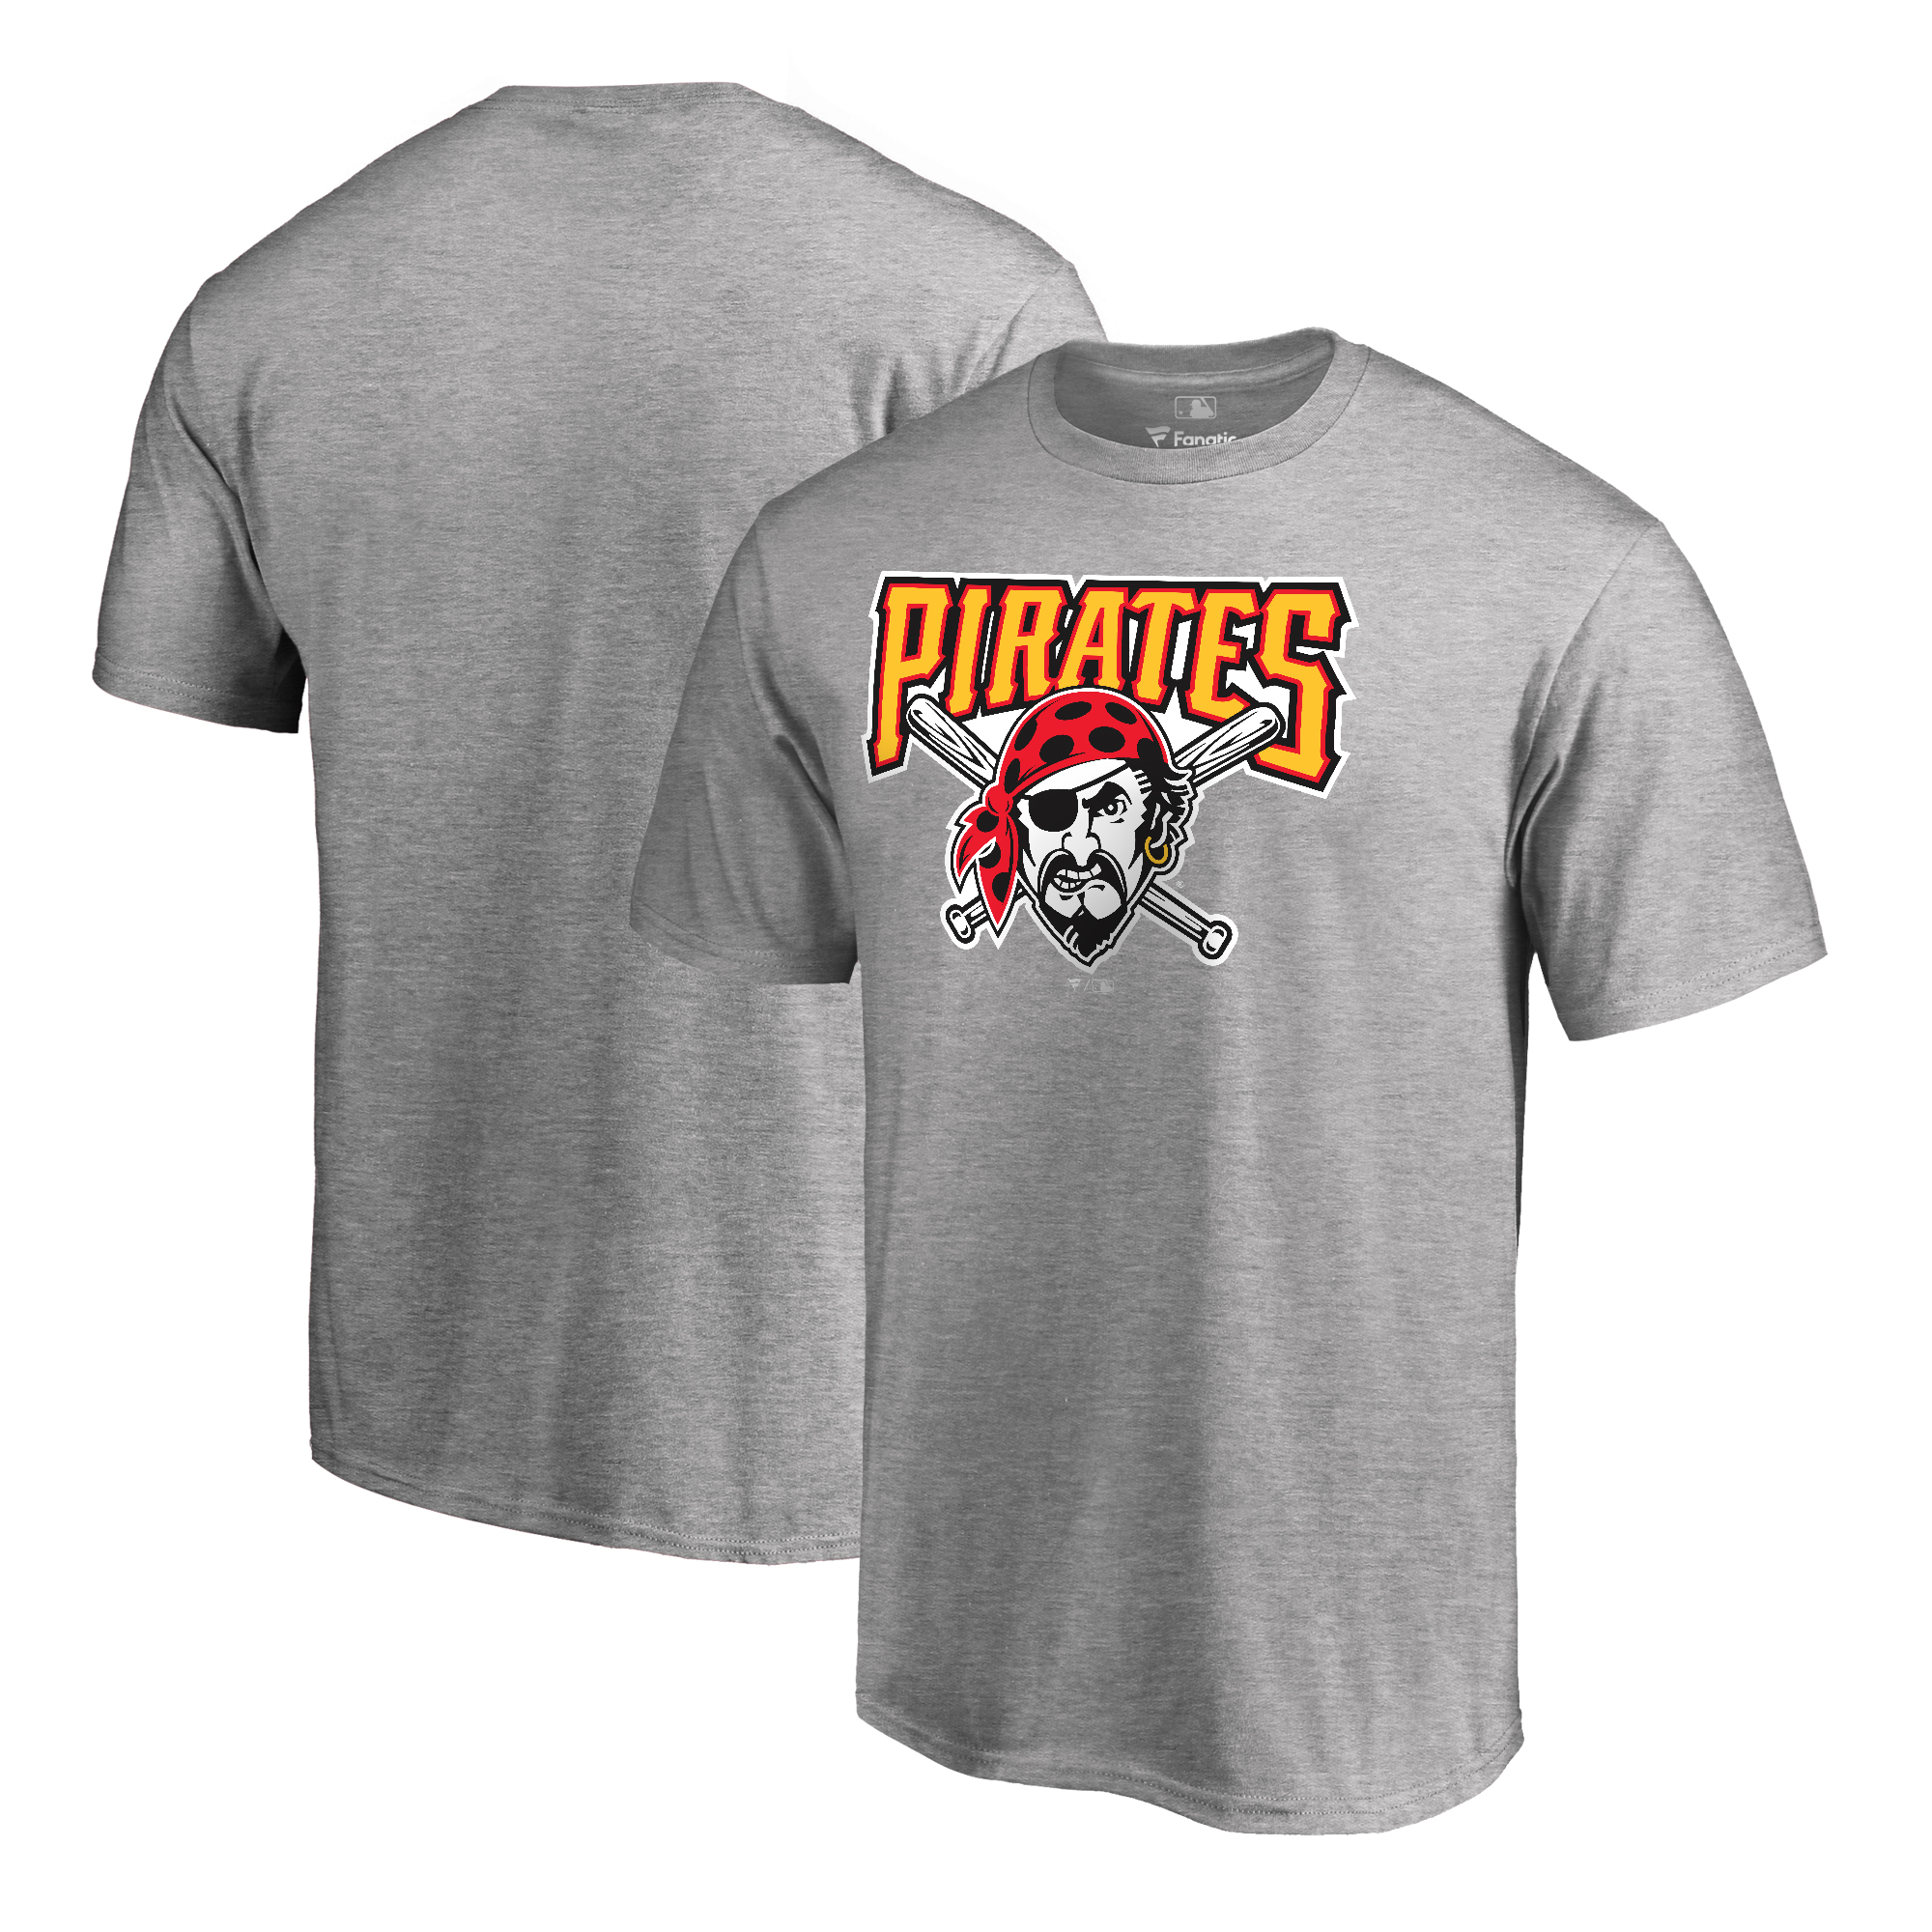 Pittsburgh Pirates Fanatics Branded Cooperstown Collection Huntington T-Shirt - Ash